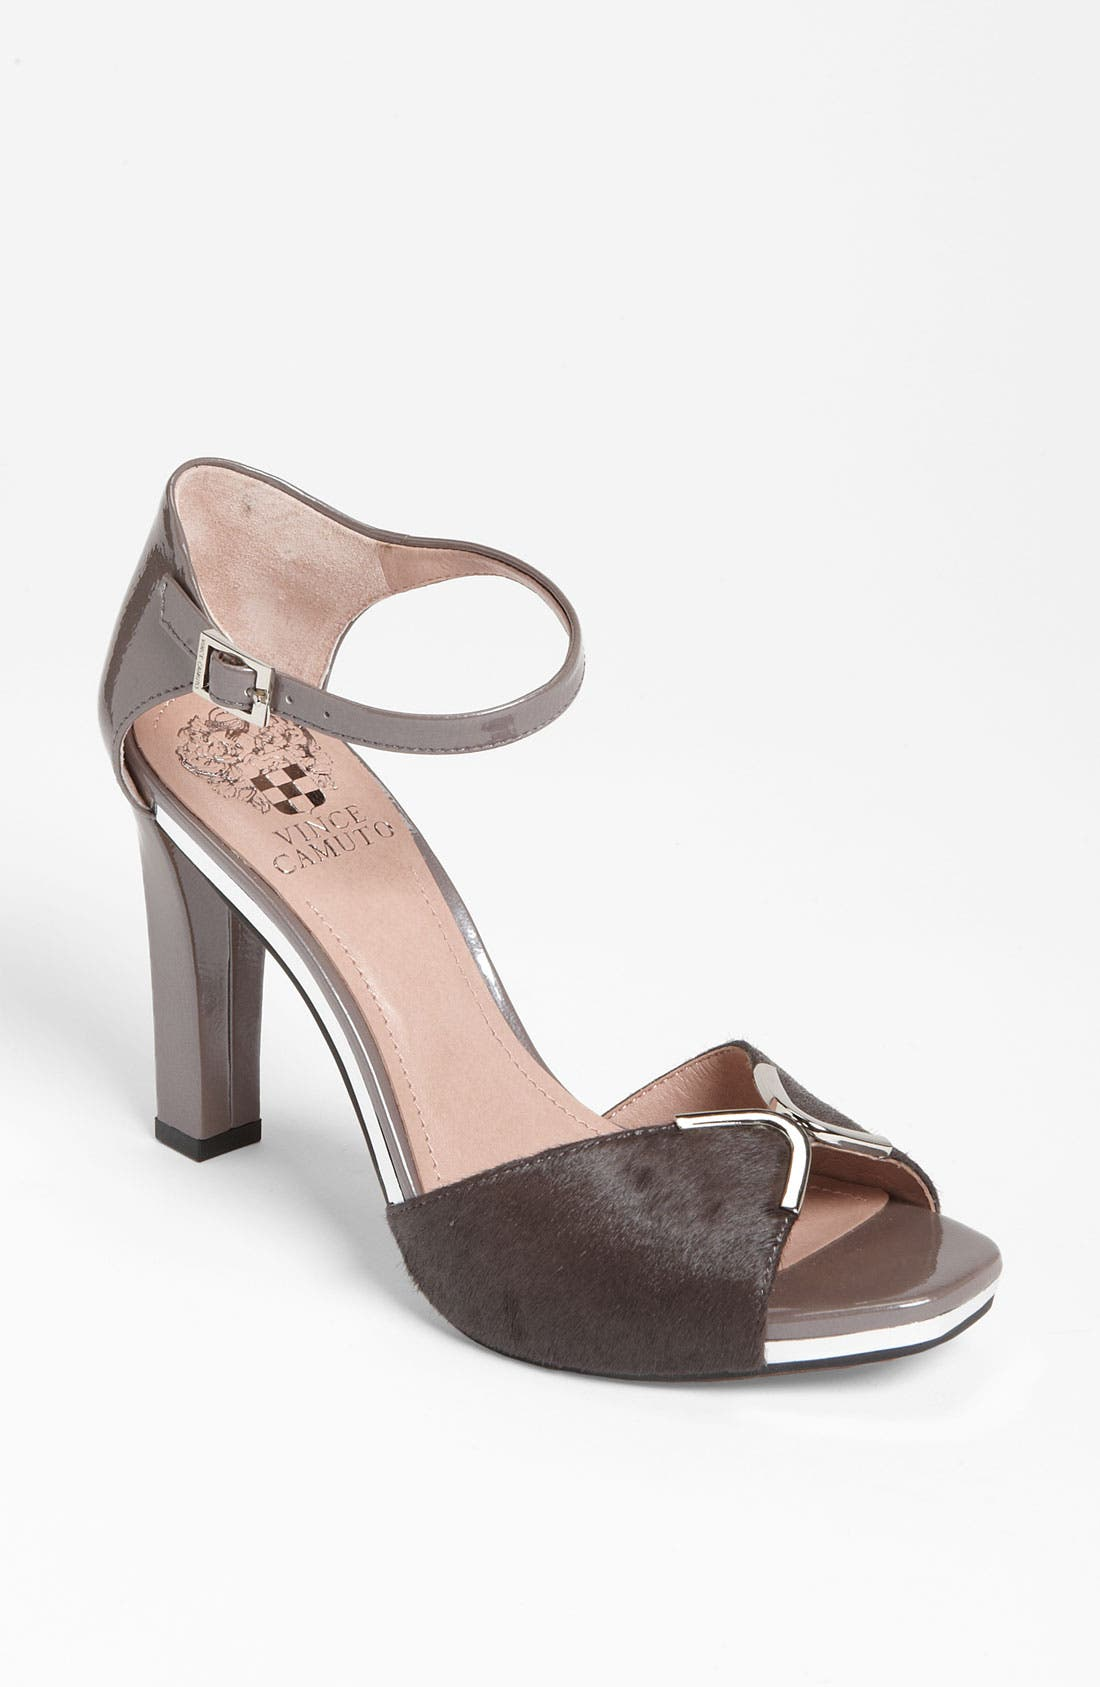 Alternate Image 1 Selected - Vince Camuto 'Thane' Sandal